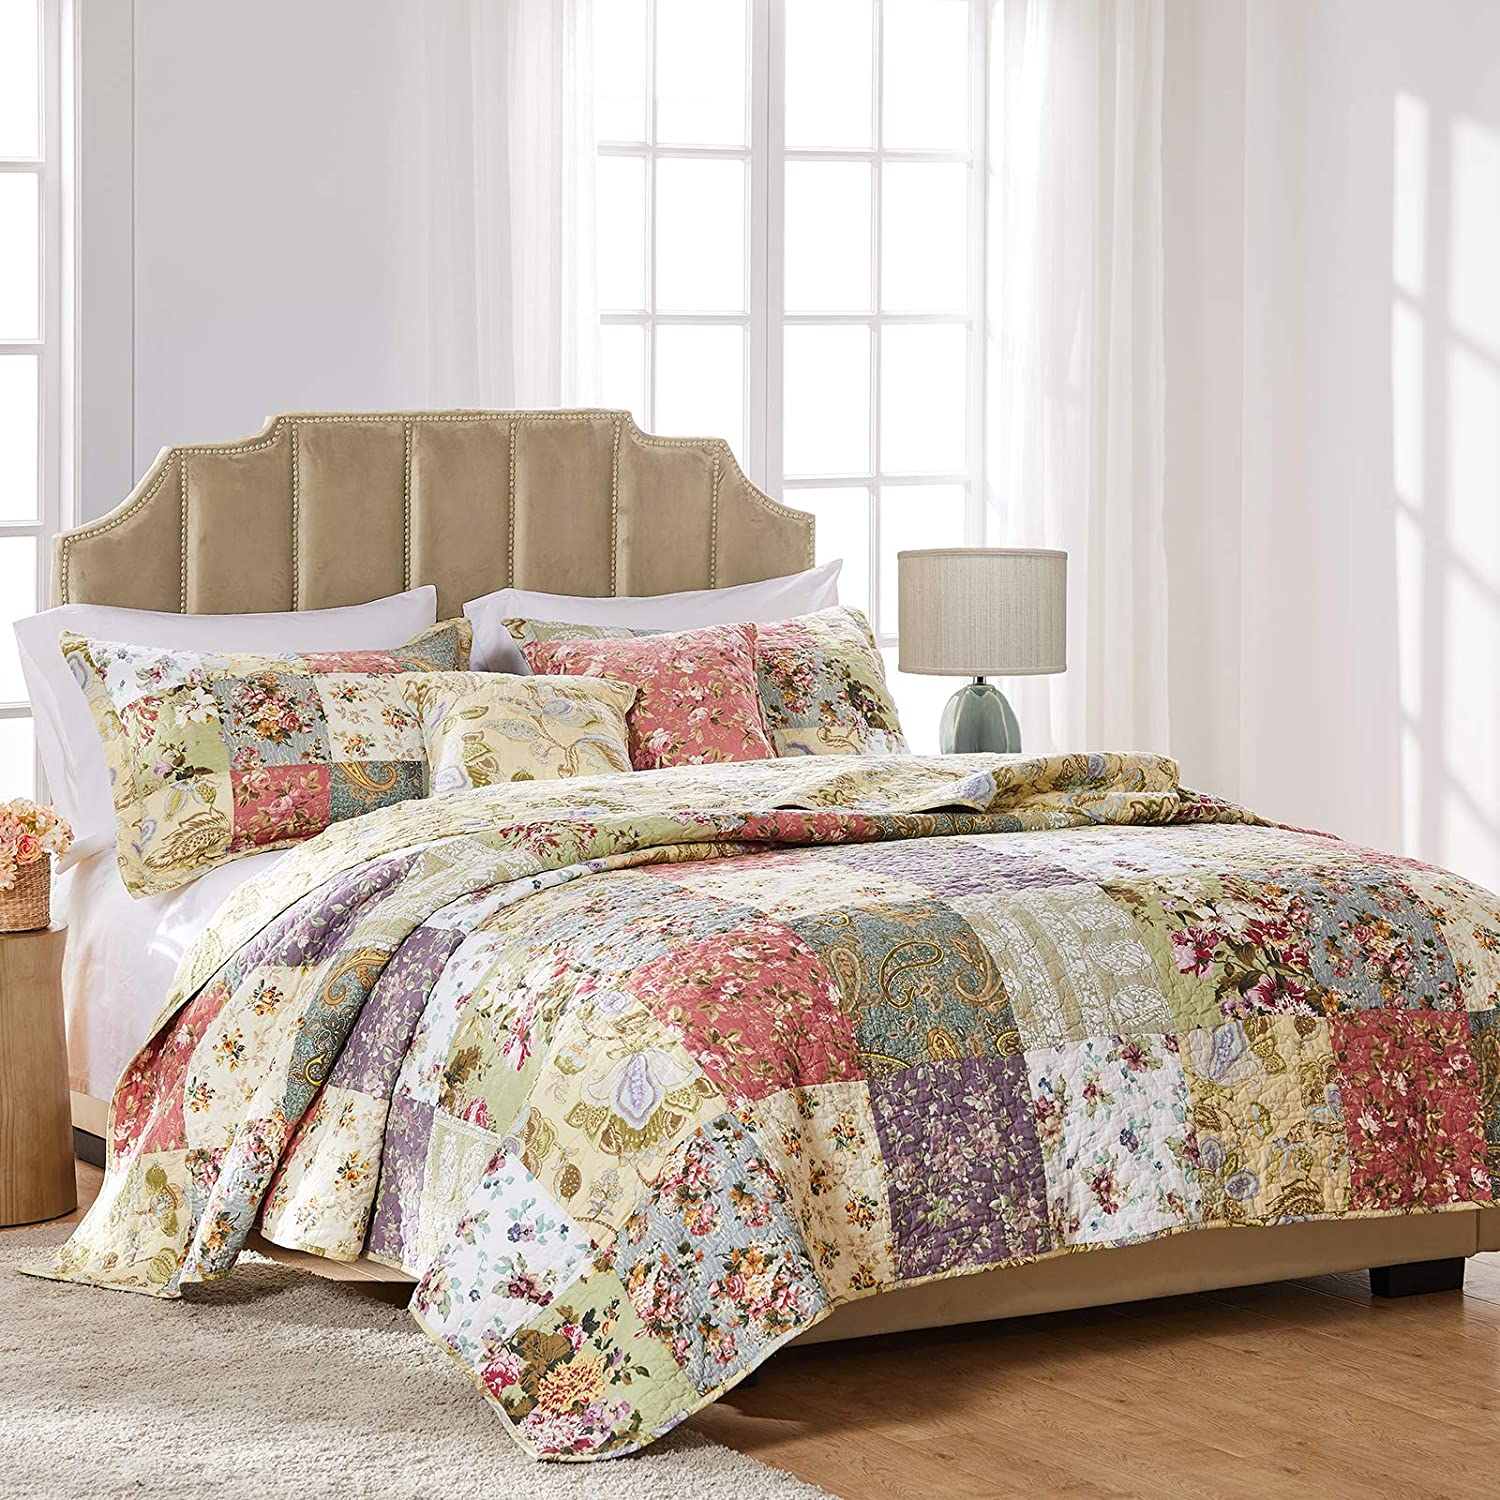 Greenland Home Blooming Prairie Cotton Patchwork Quilt Set, 5-Piece King/Cal King, Multi